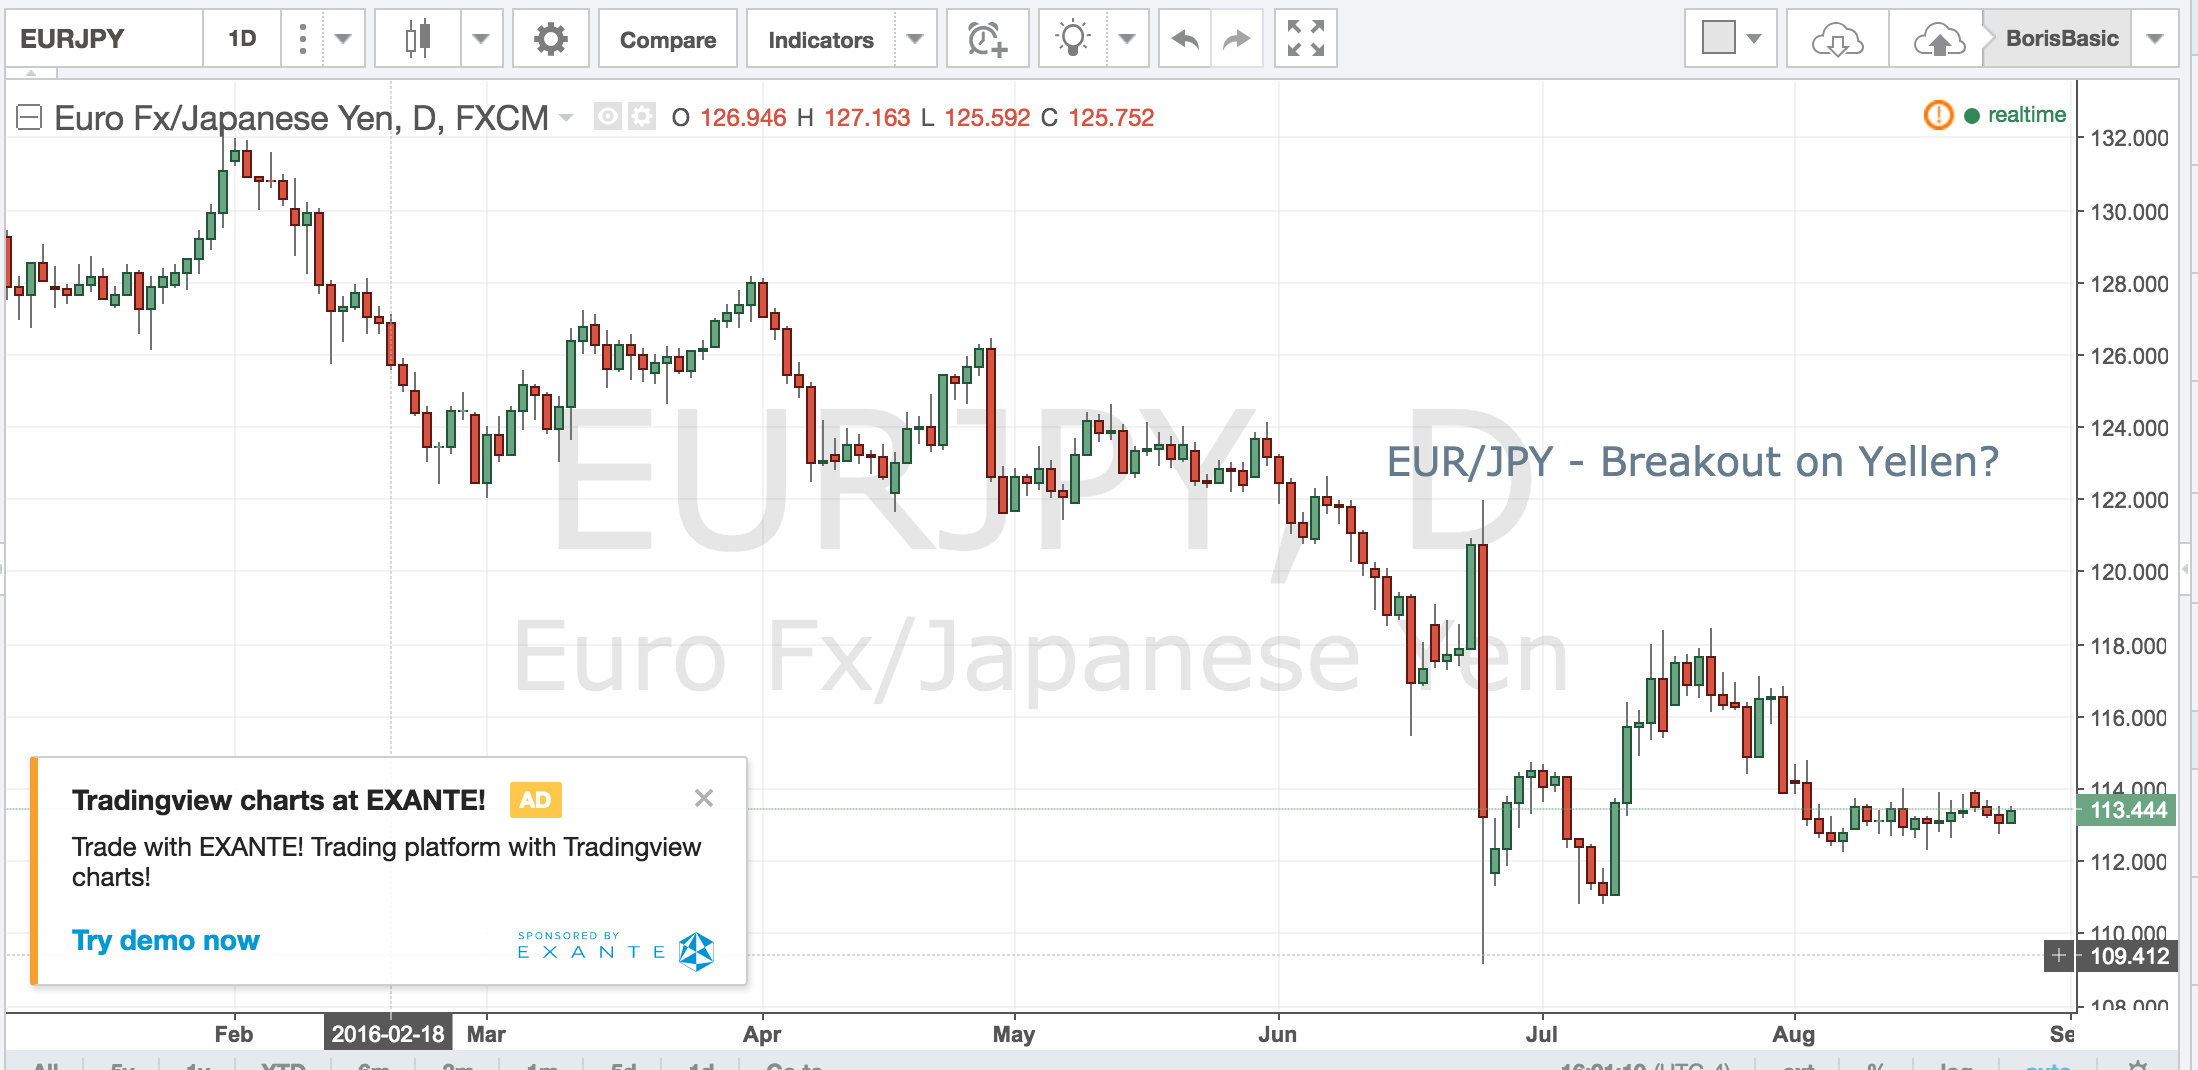 EURJPY – Breakout on Yellen?